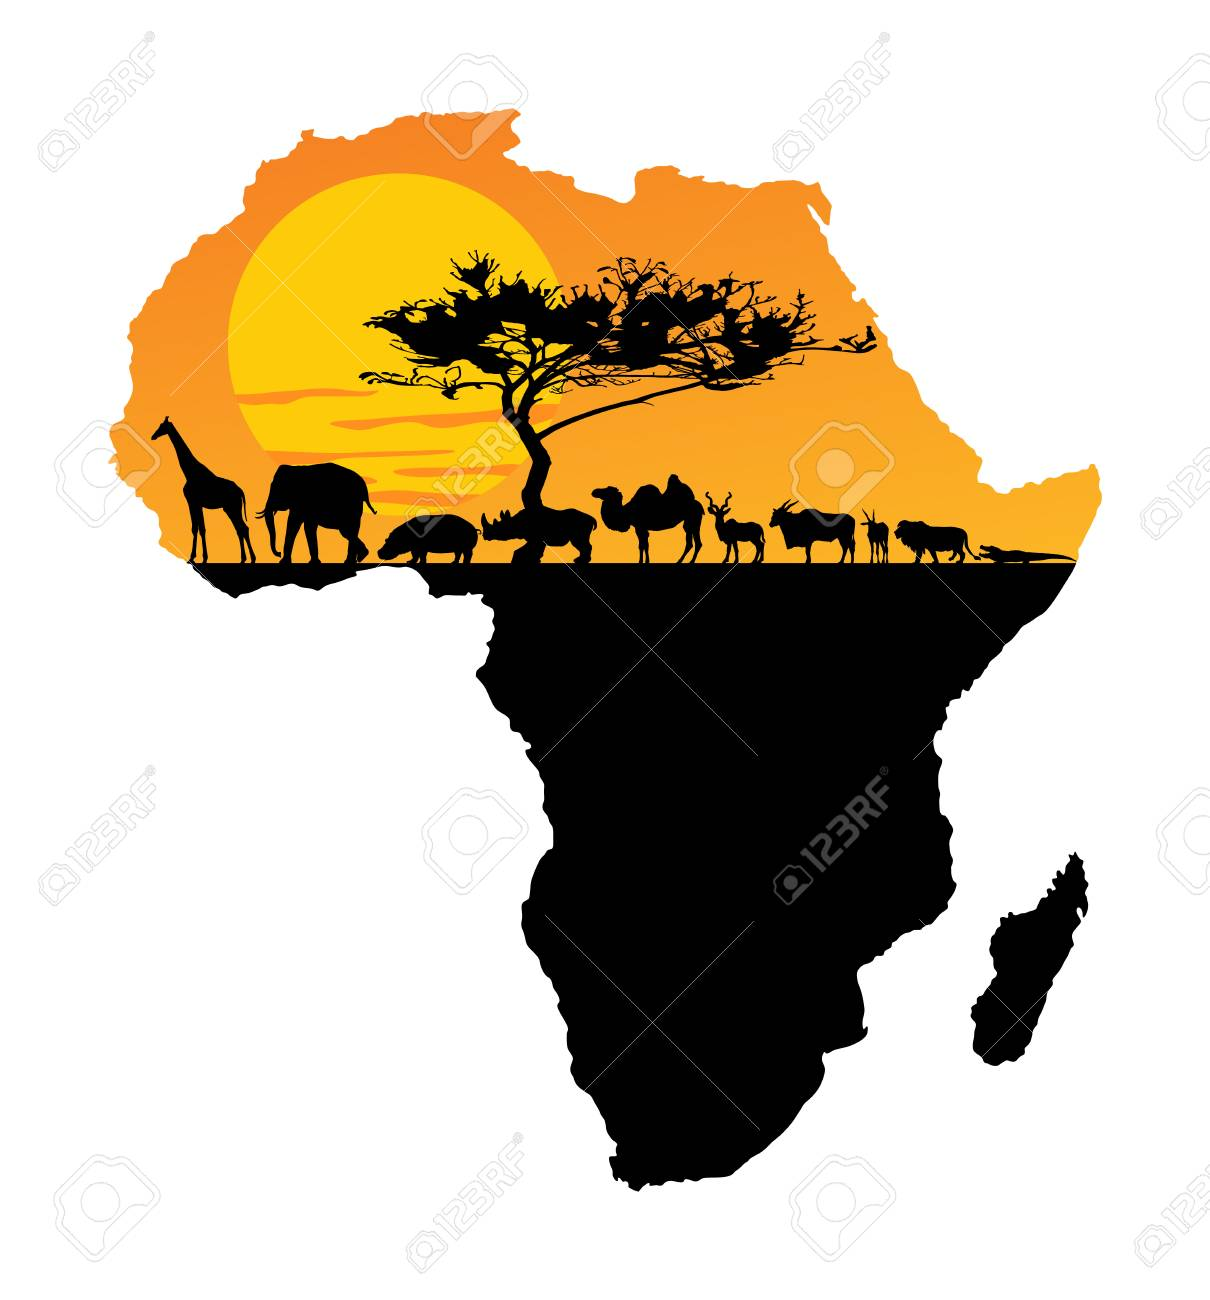 Savannas In Africa Map on sahel in africa map, united states in africa map, savanna region of africa, kalahari in africa map, savanna in south america, congo river map, islam in africa map, major rivers in africa map, cairo in africa map, forest in africa map, steppe in africa map, kenya in africa map, different tribes in africa map, african savanna location map, great rift valley map, bodies of water in africa map, ebola in africa map, tropical rainforest in africa map, aids in africa map, savanna in asia,